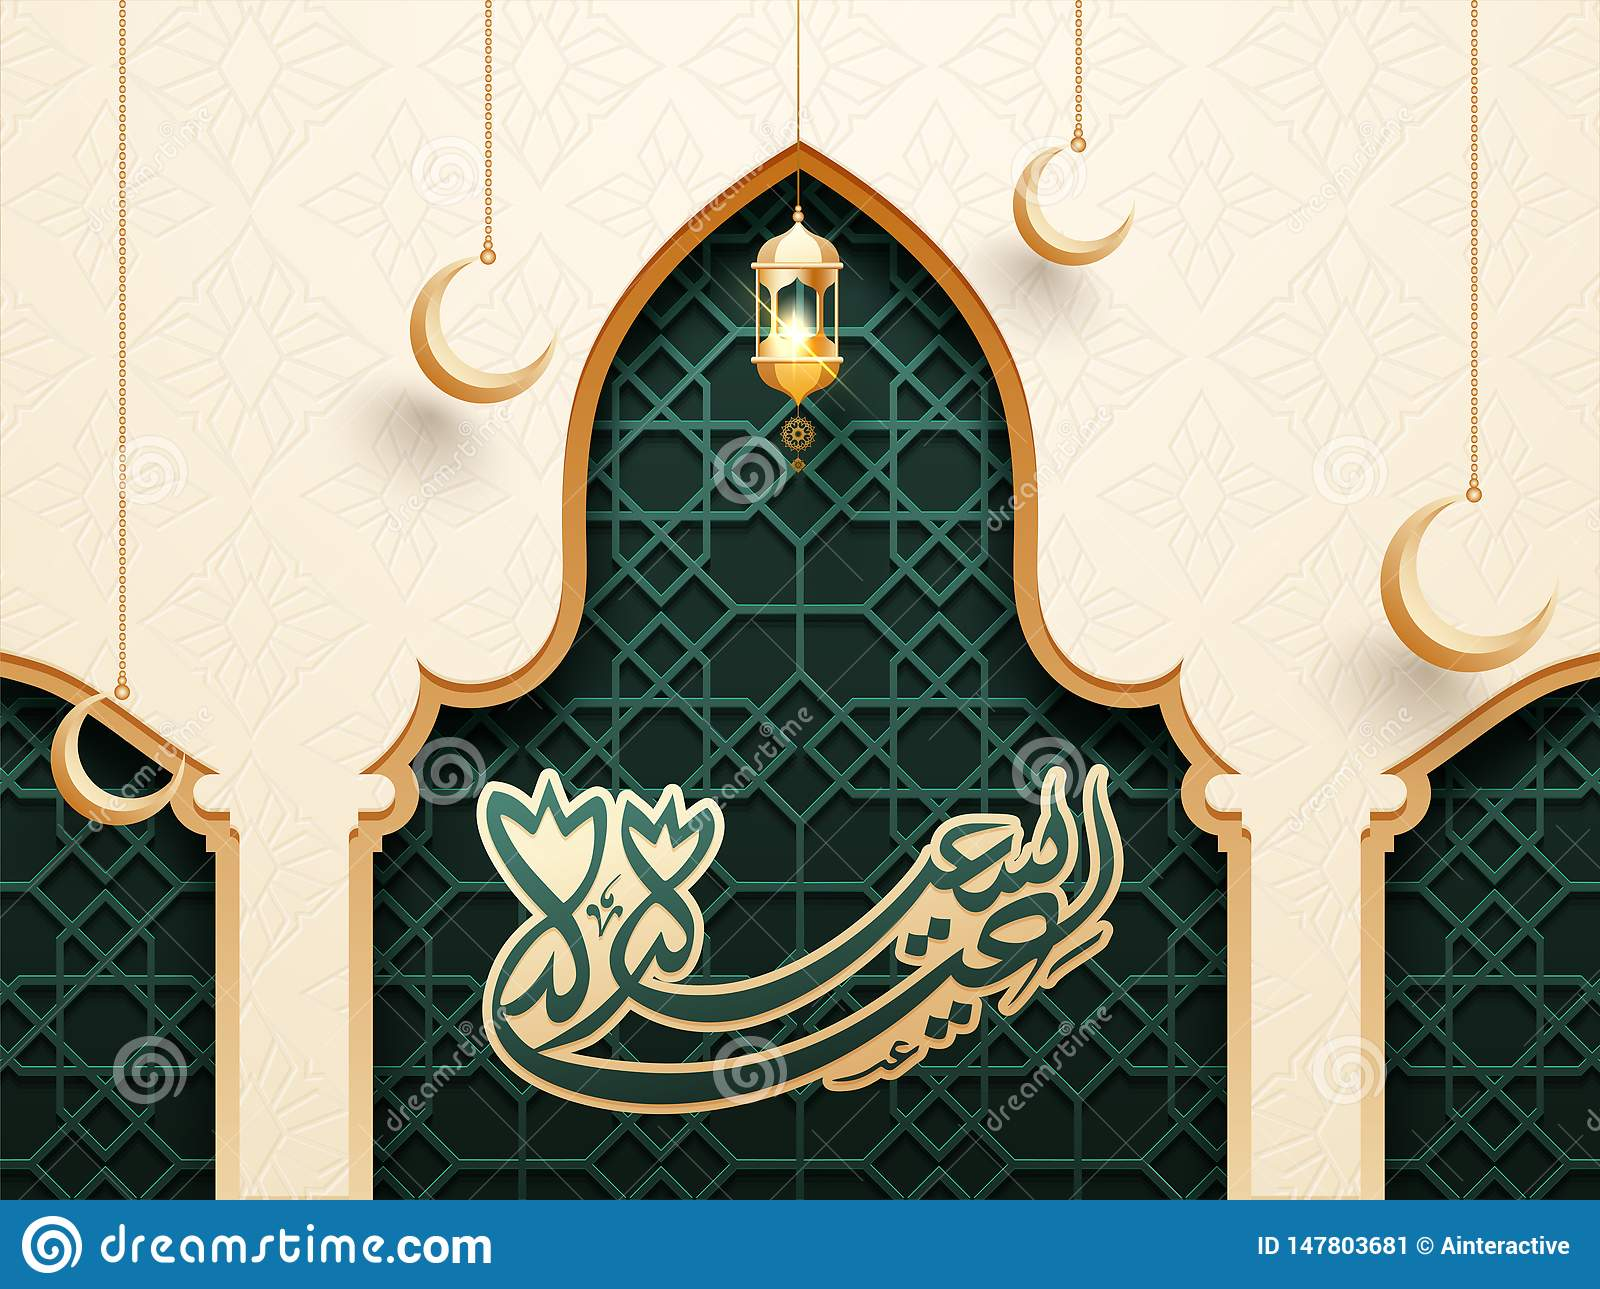 Paper cut style mosque gate decorated with hanging crescent moons on green arabic pattern background for Islamic festival of Eid